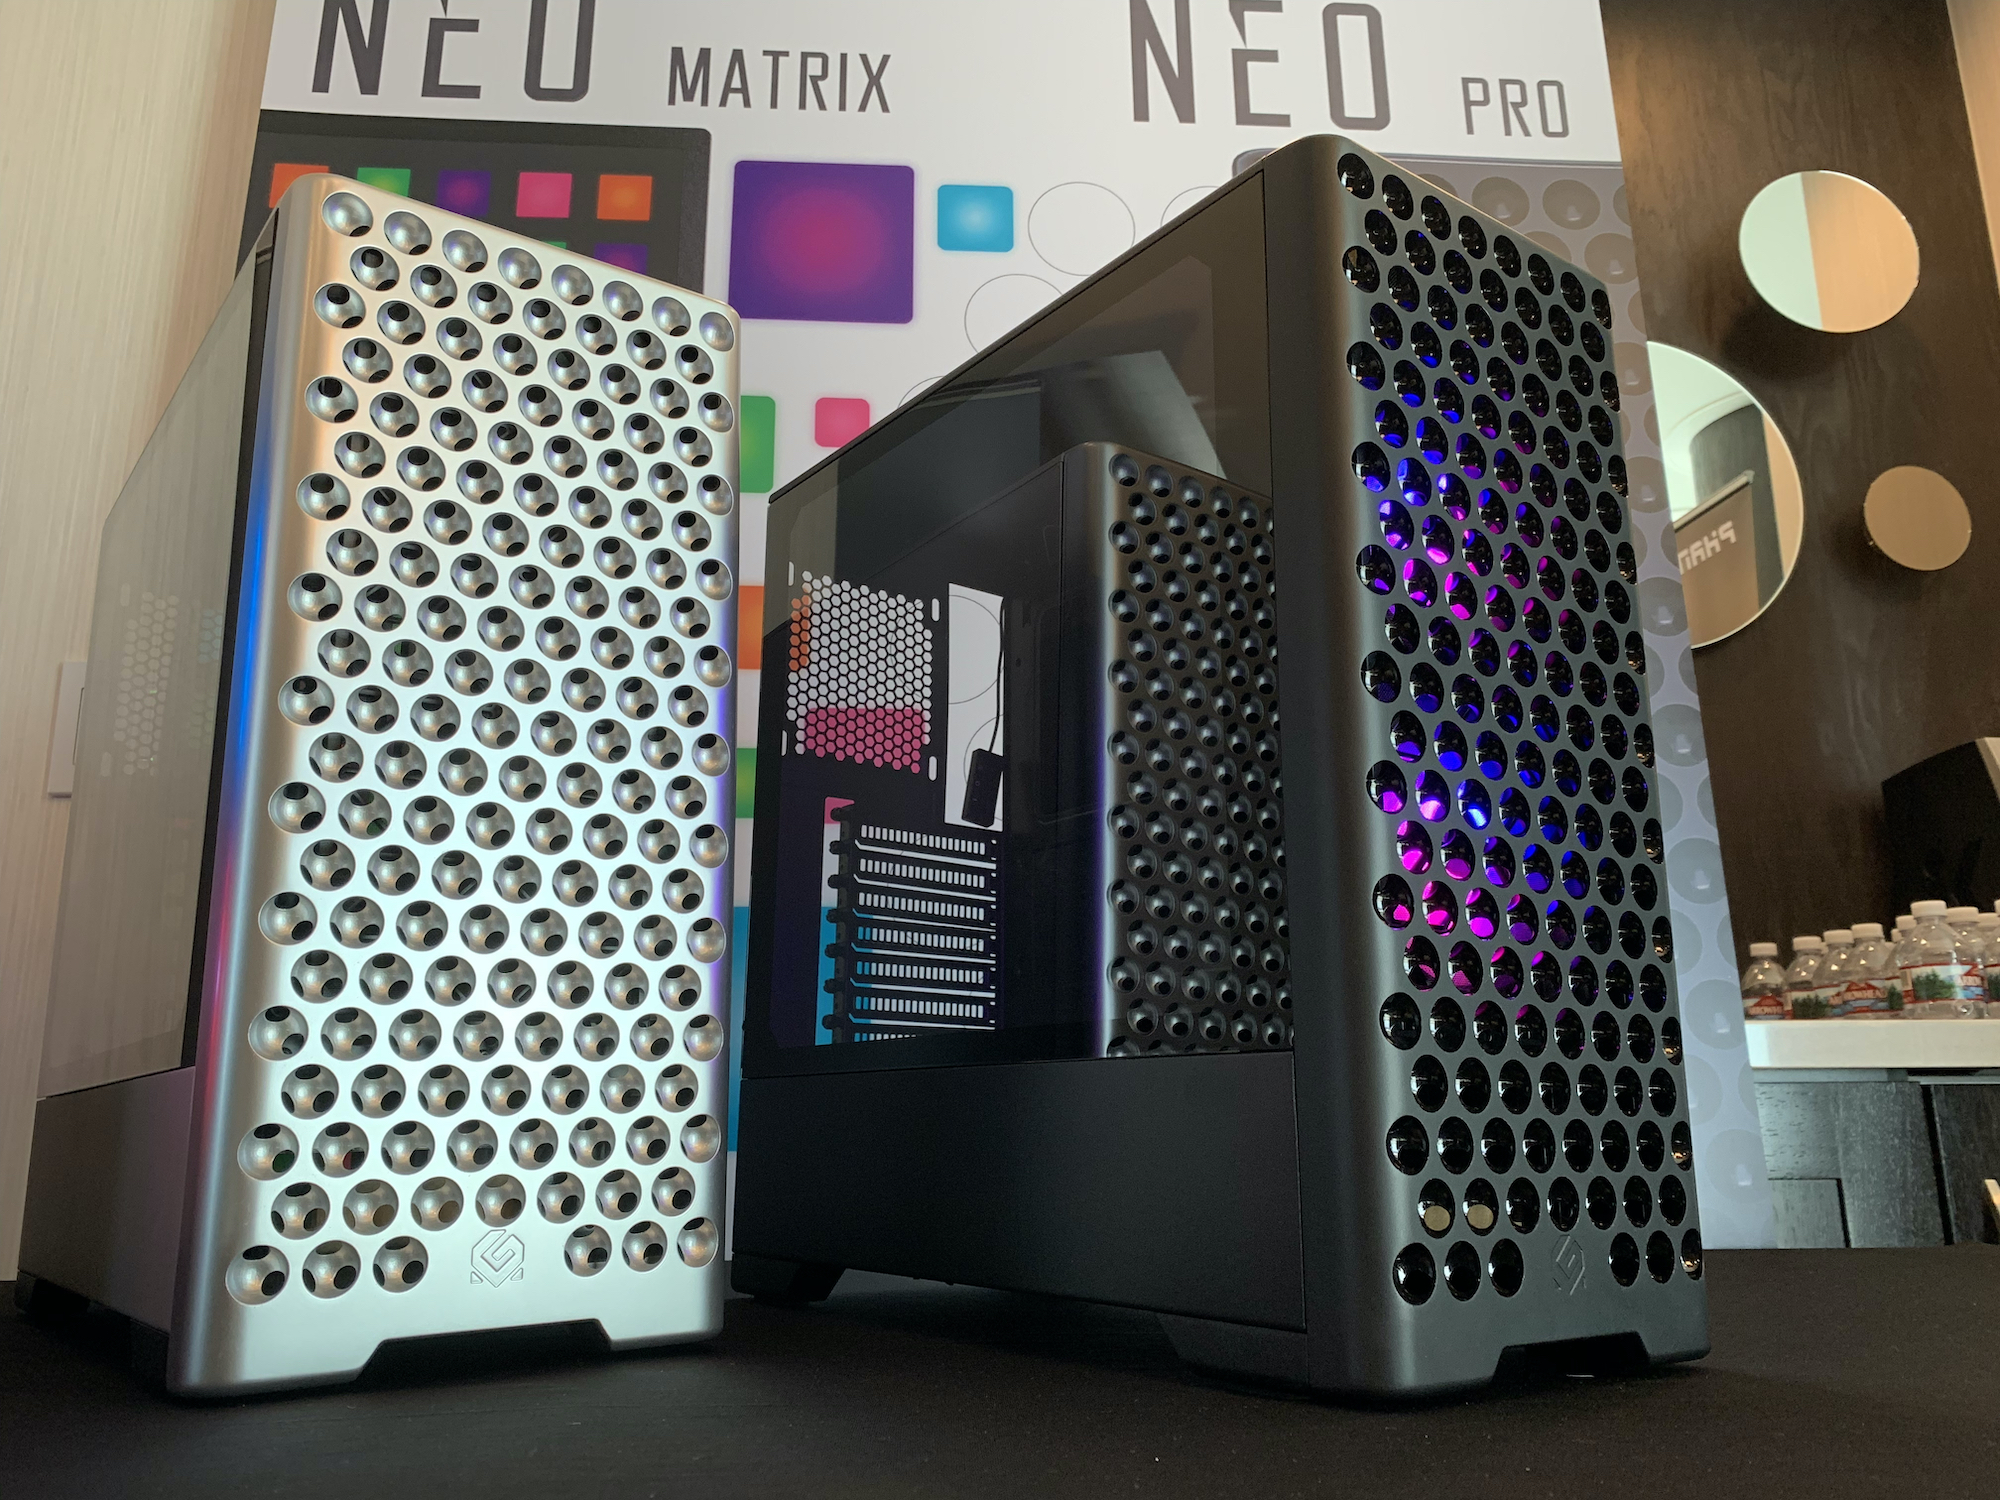 Rack Mount Mac Pro Now Available for Purchase Starting at $6,499